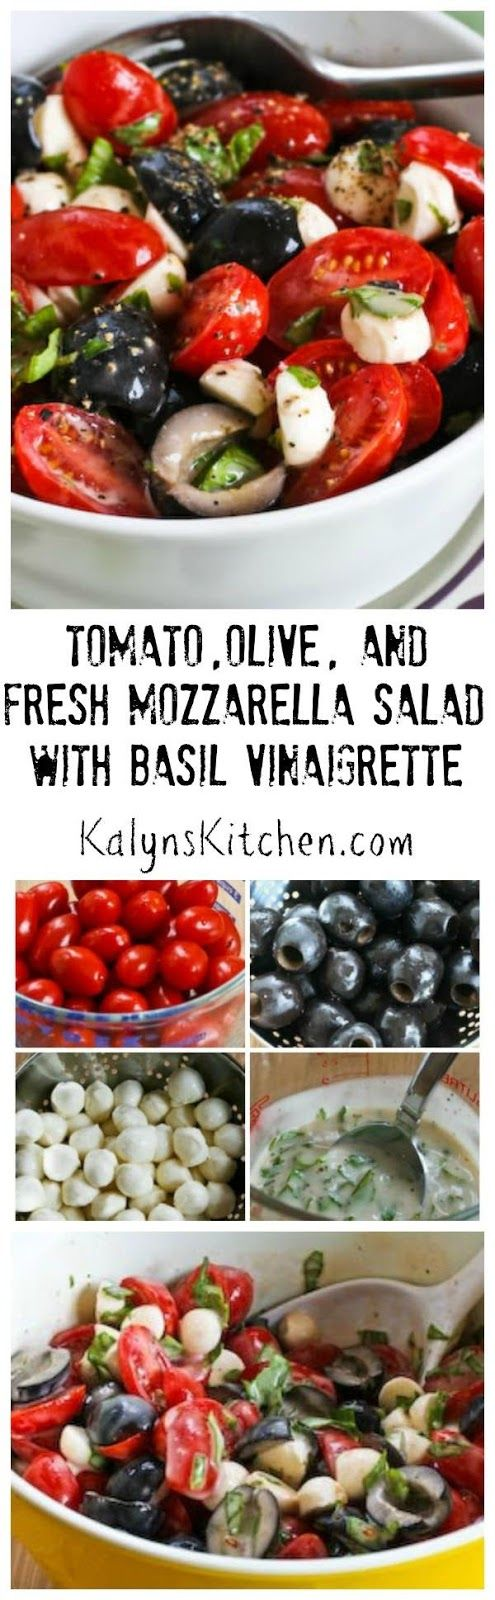 As soon as I can get fresh basil and good tomatoes I start making this Tomato, Olive, and Fresh Mozzarella Salad with Basil Vinaigrette, and I make it all summer long! [from KalynsKitchen.com]